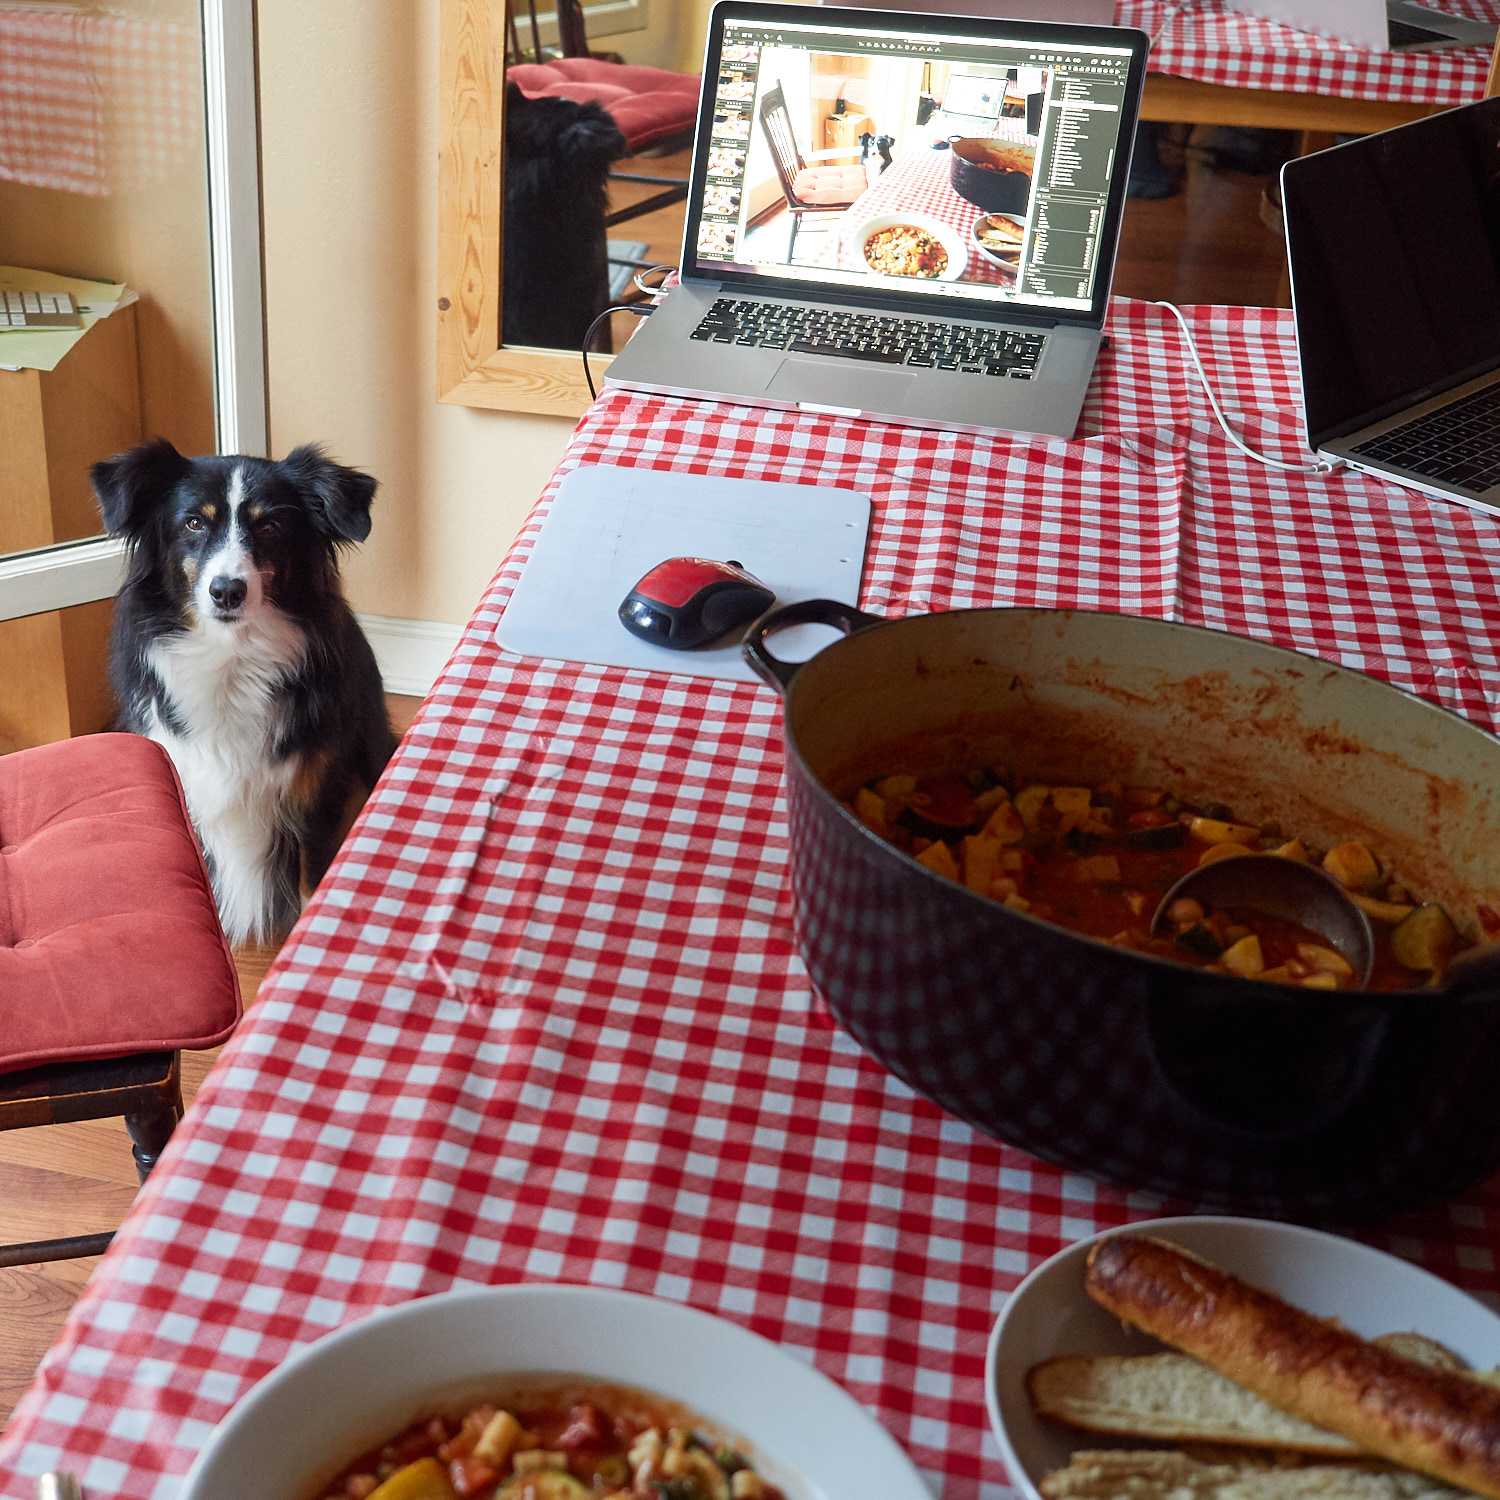 Riley was quite interested in Minestrone and waited close by… hoping for a taste.